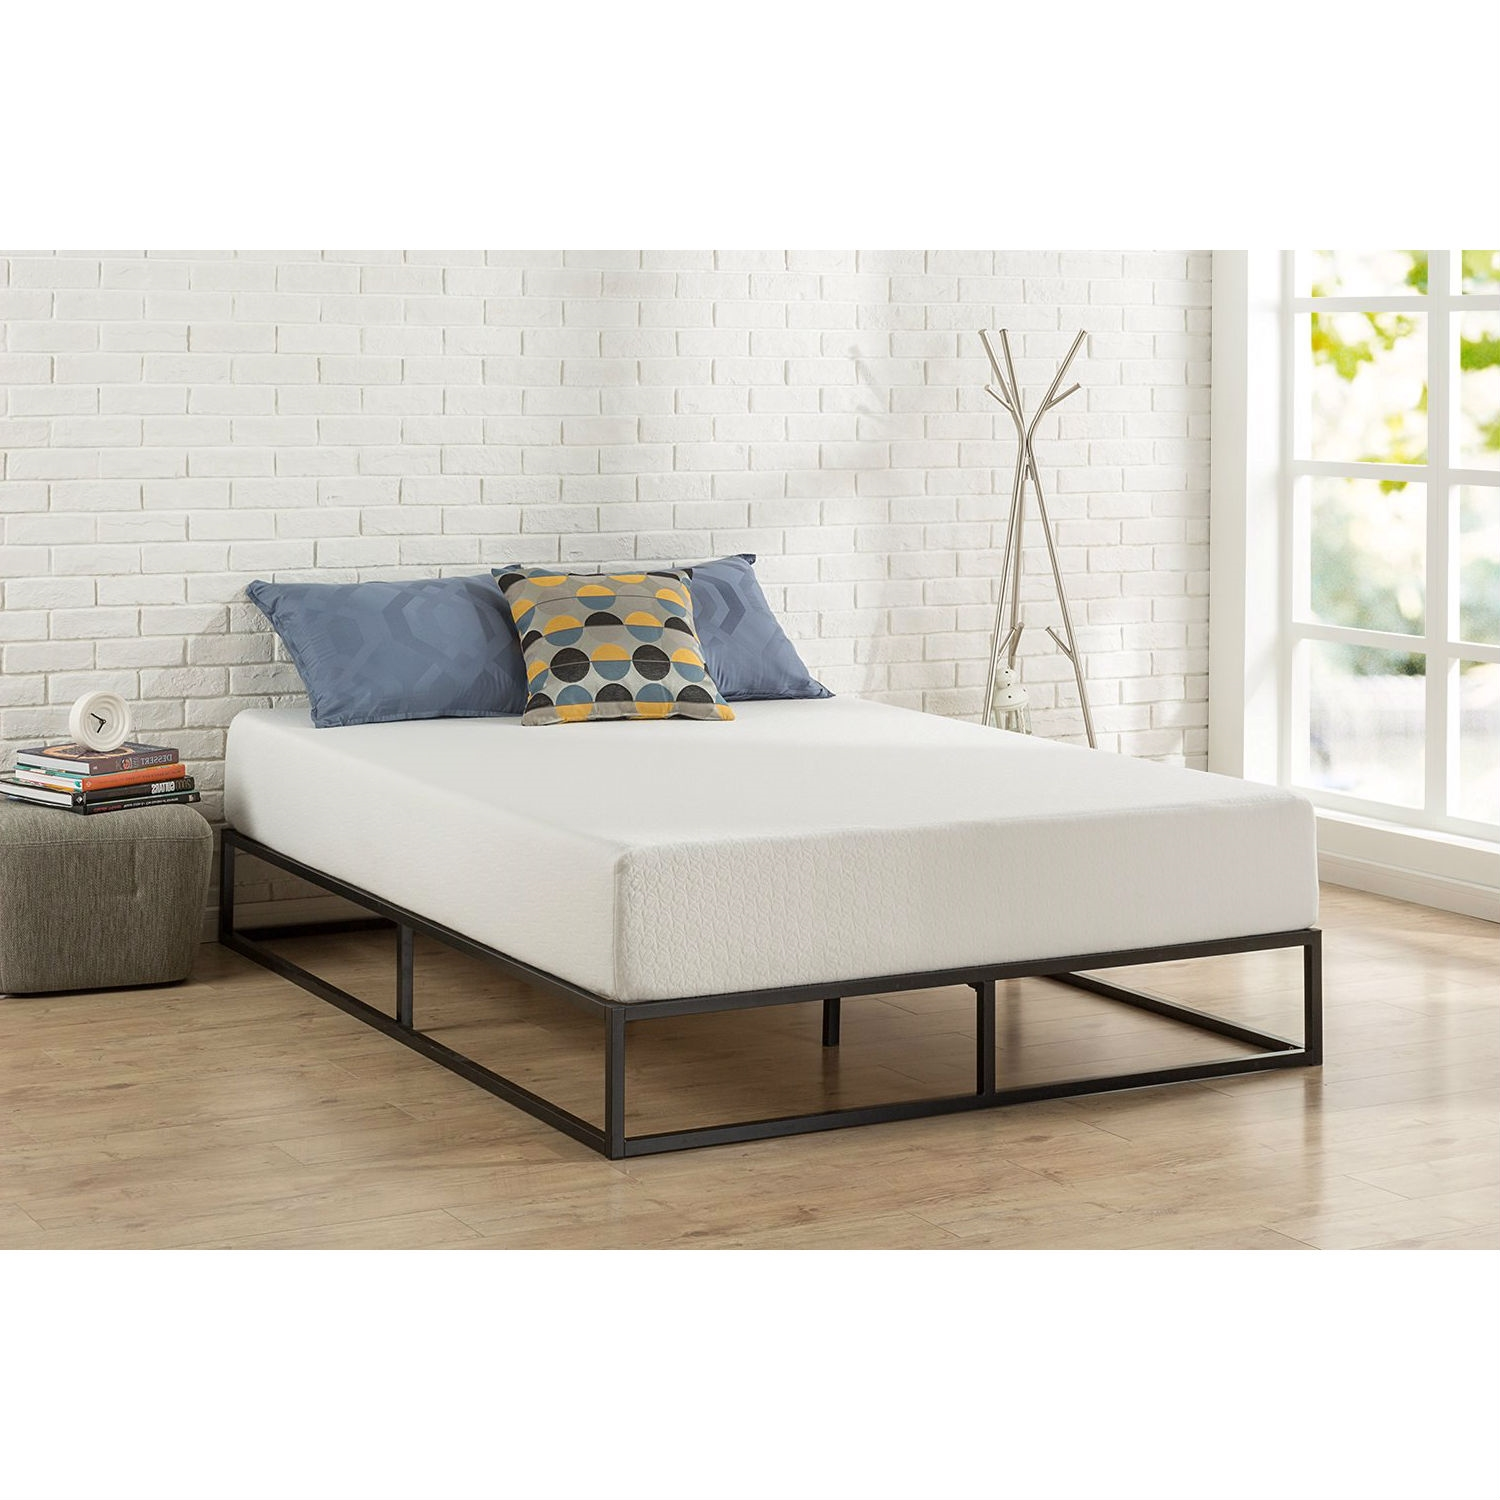 Low Bed Frames Canada Twin Size 10 Inch Low Profile Modern Metal Platform Bed